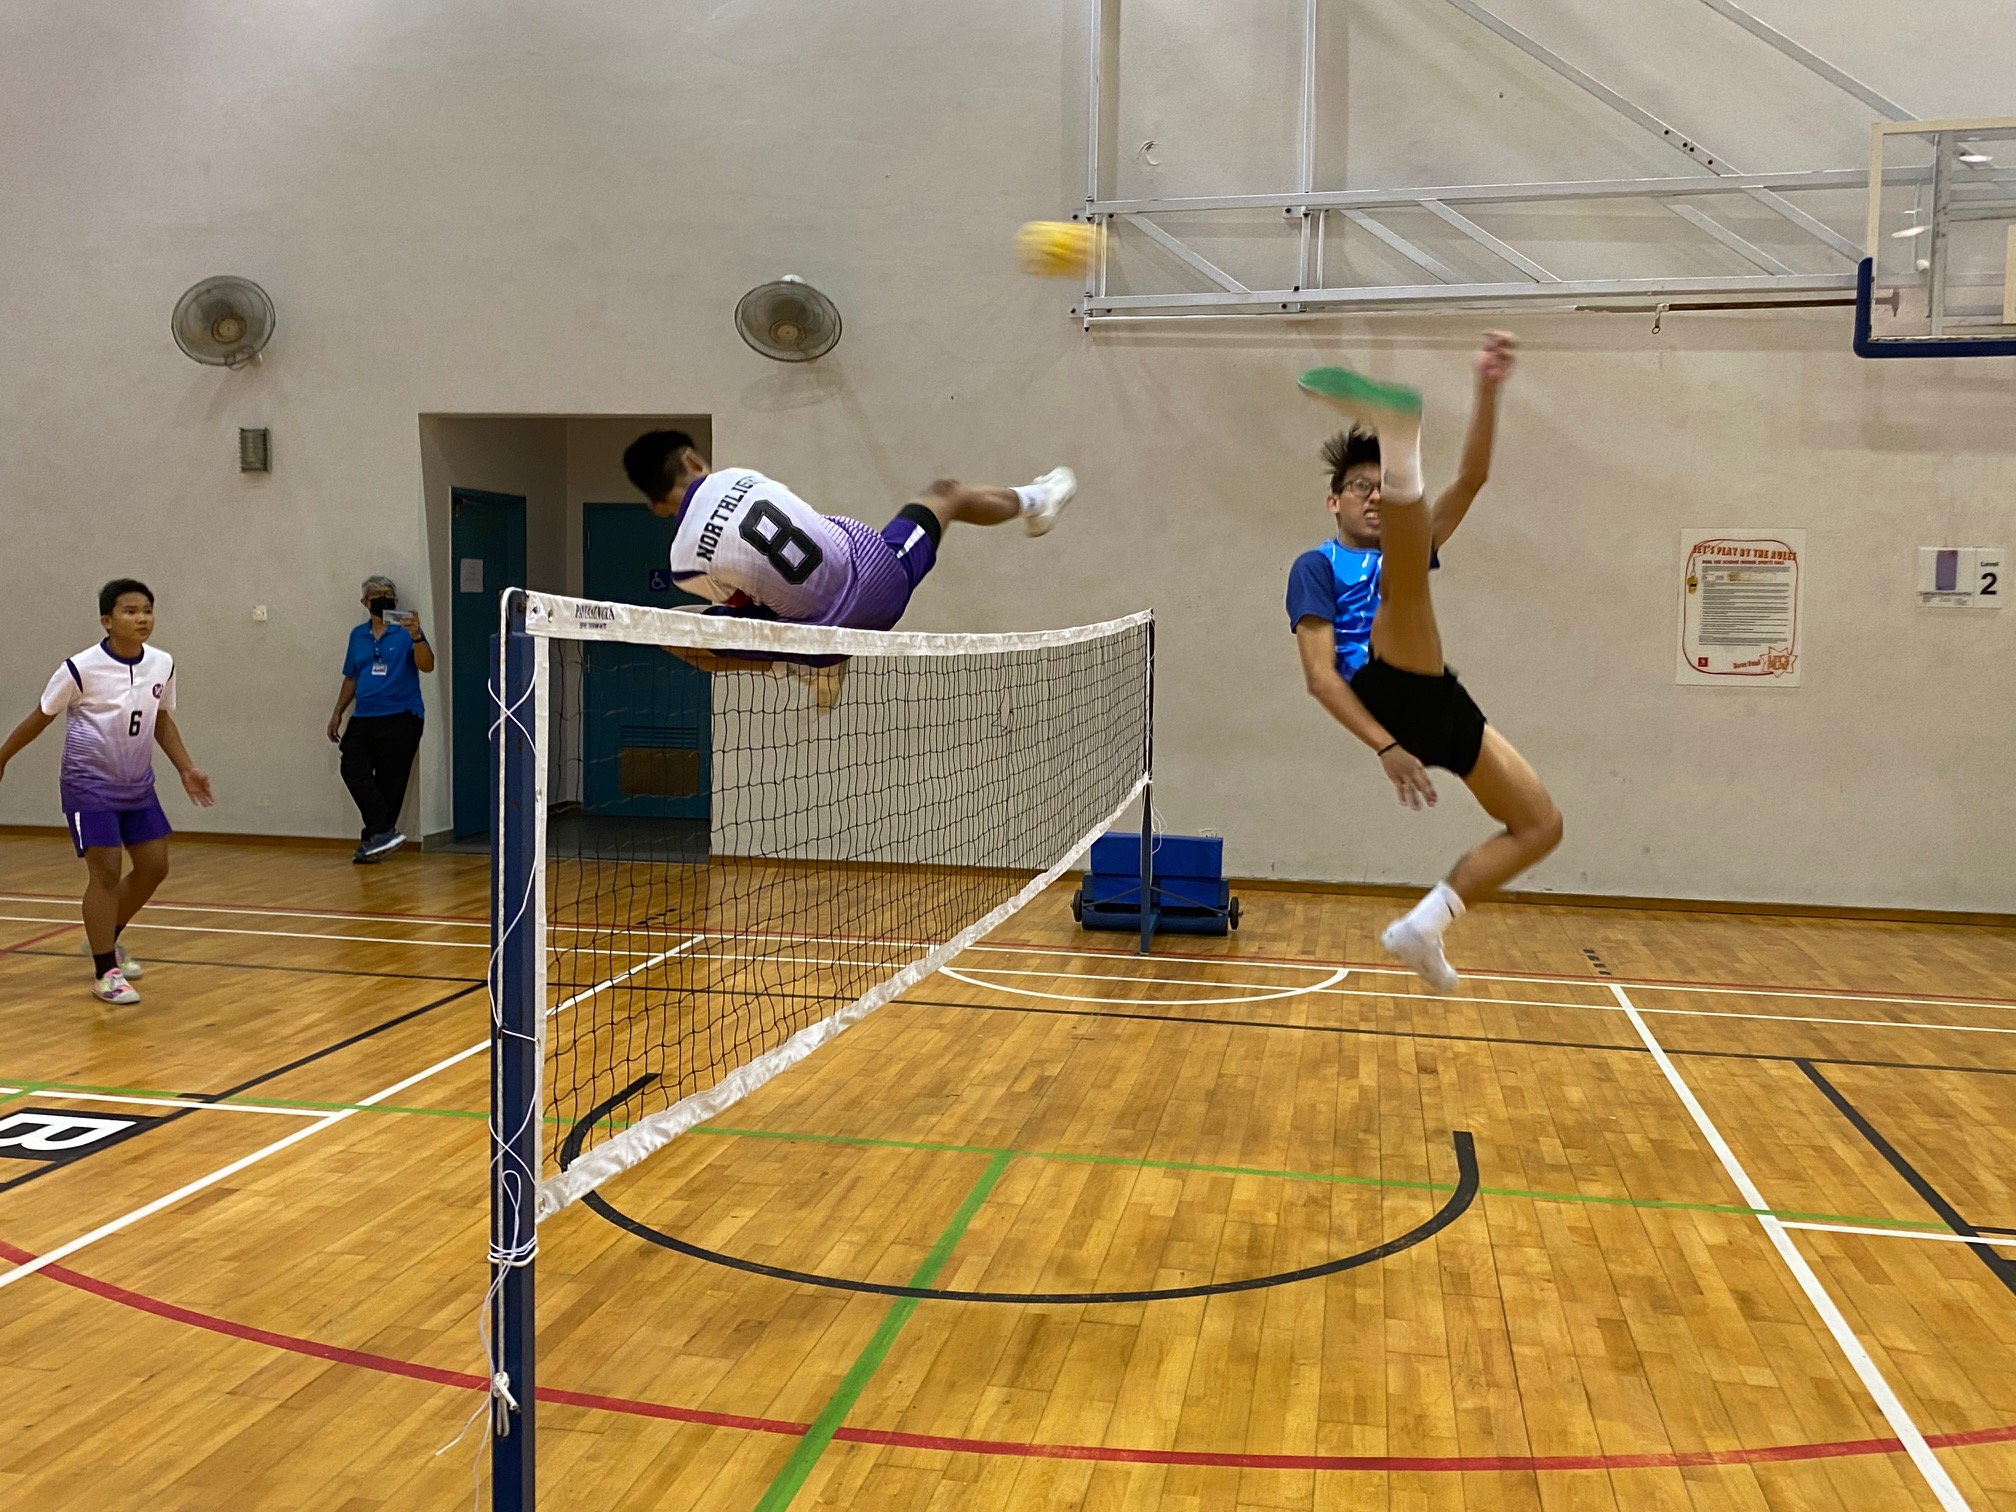 NSG A Div Sepak Takraw: Woodlands Sec show title intent in 3-0 series win over Northlight!